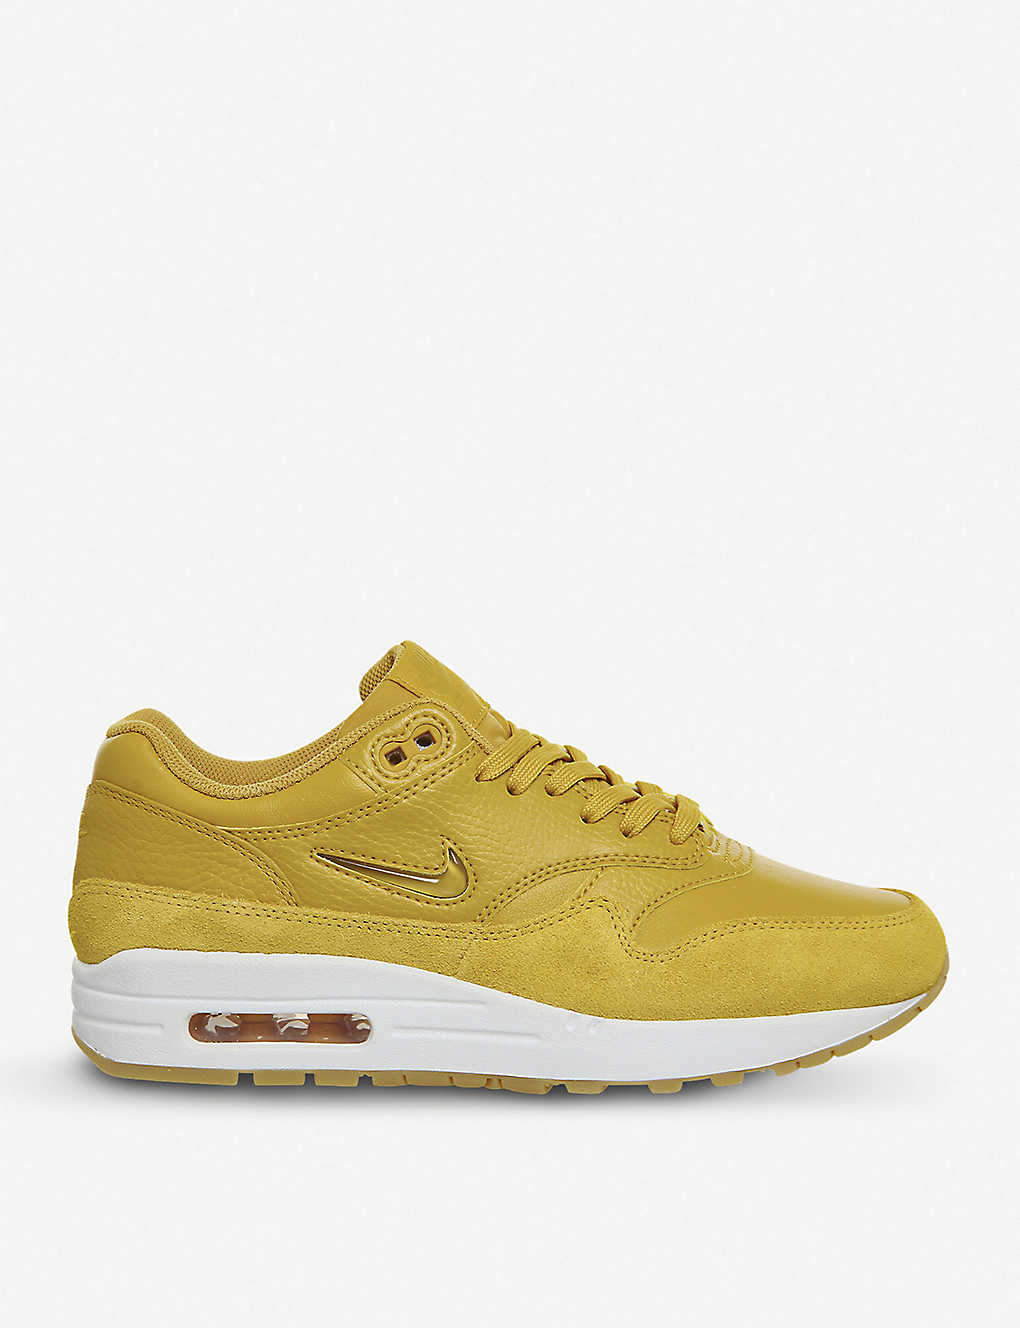 NIKE Air Max 1 Jewel leather trainers |